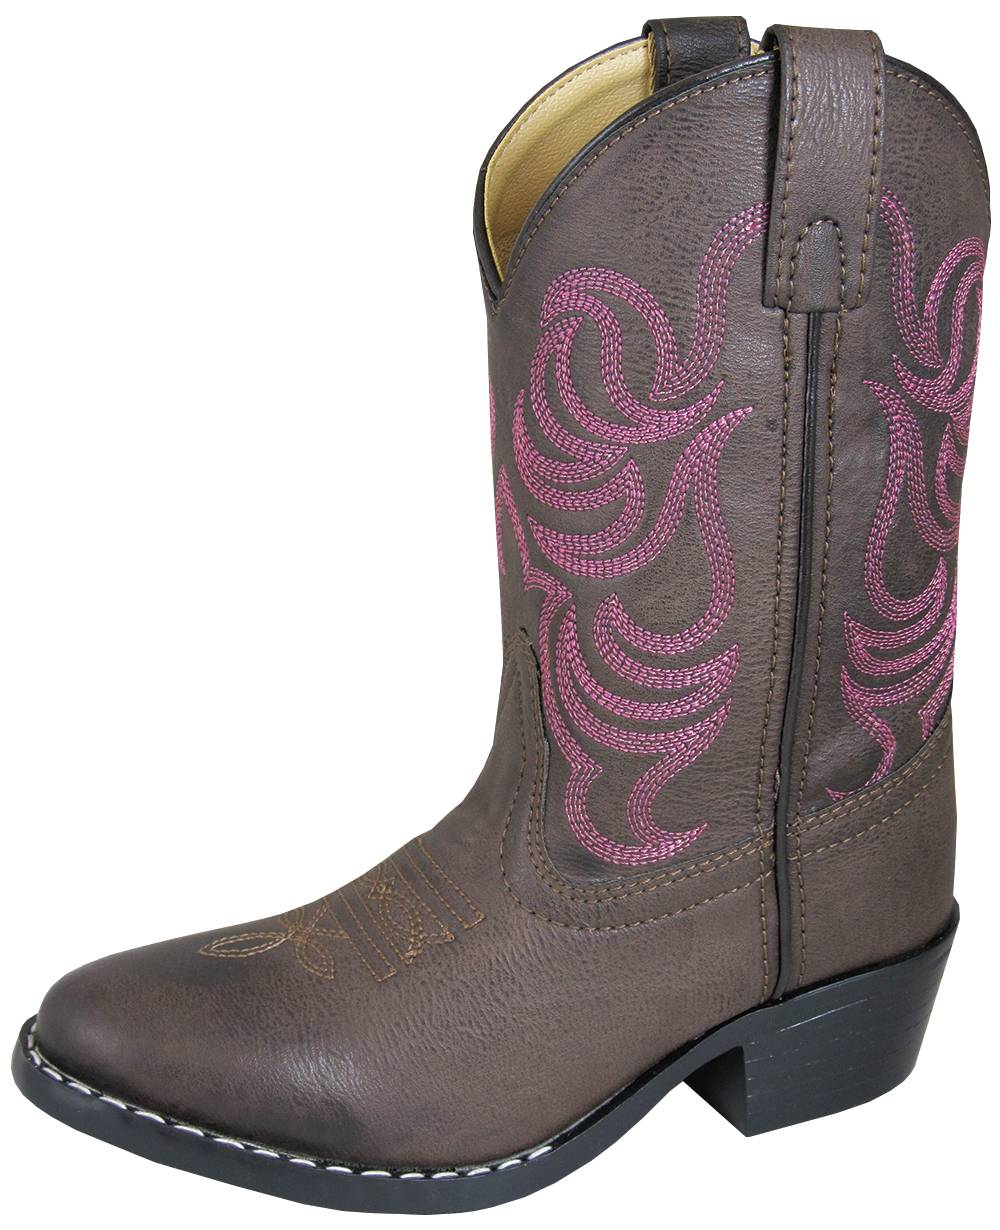 Smoky Mountain Monterey Boots - Youth - Brown/Pink